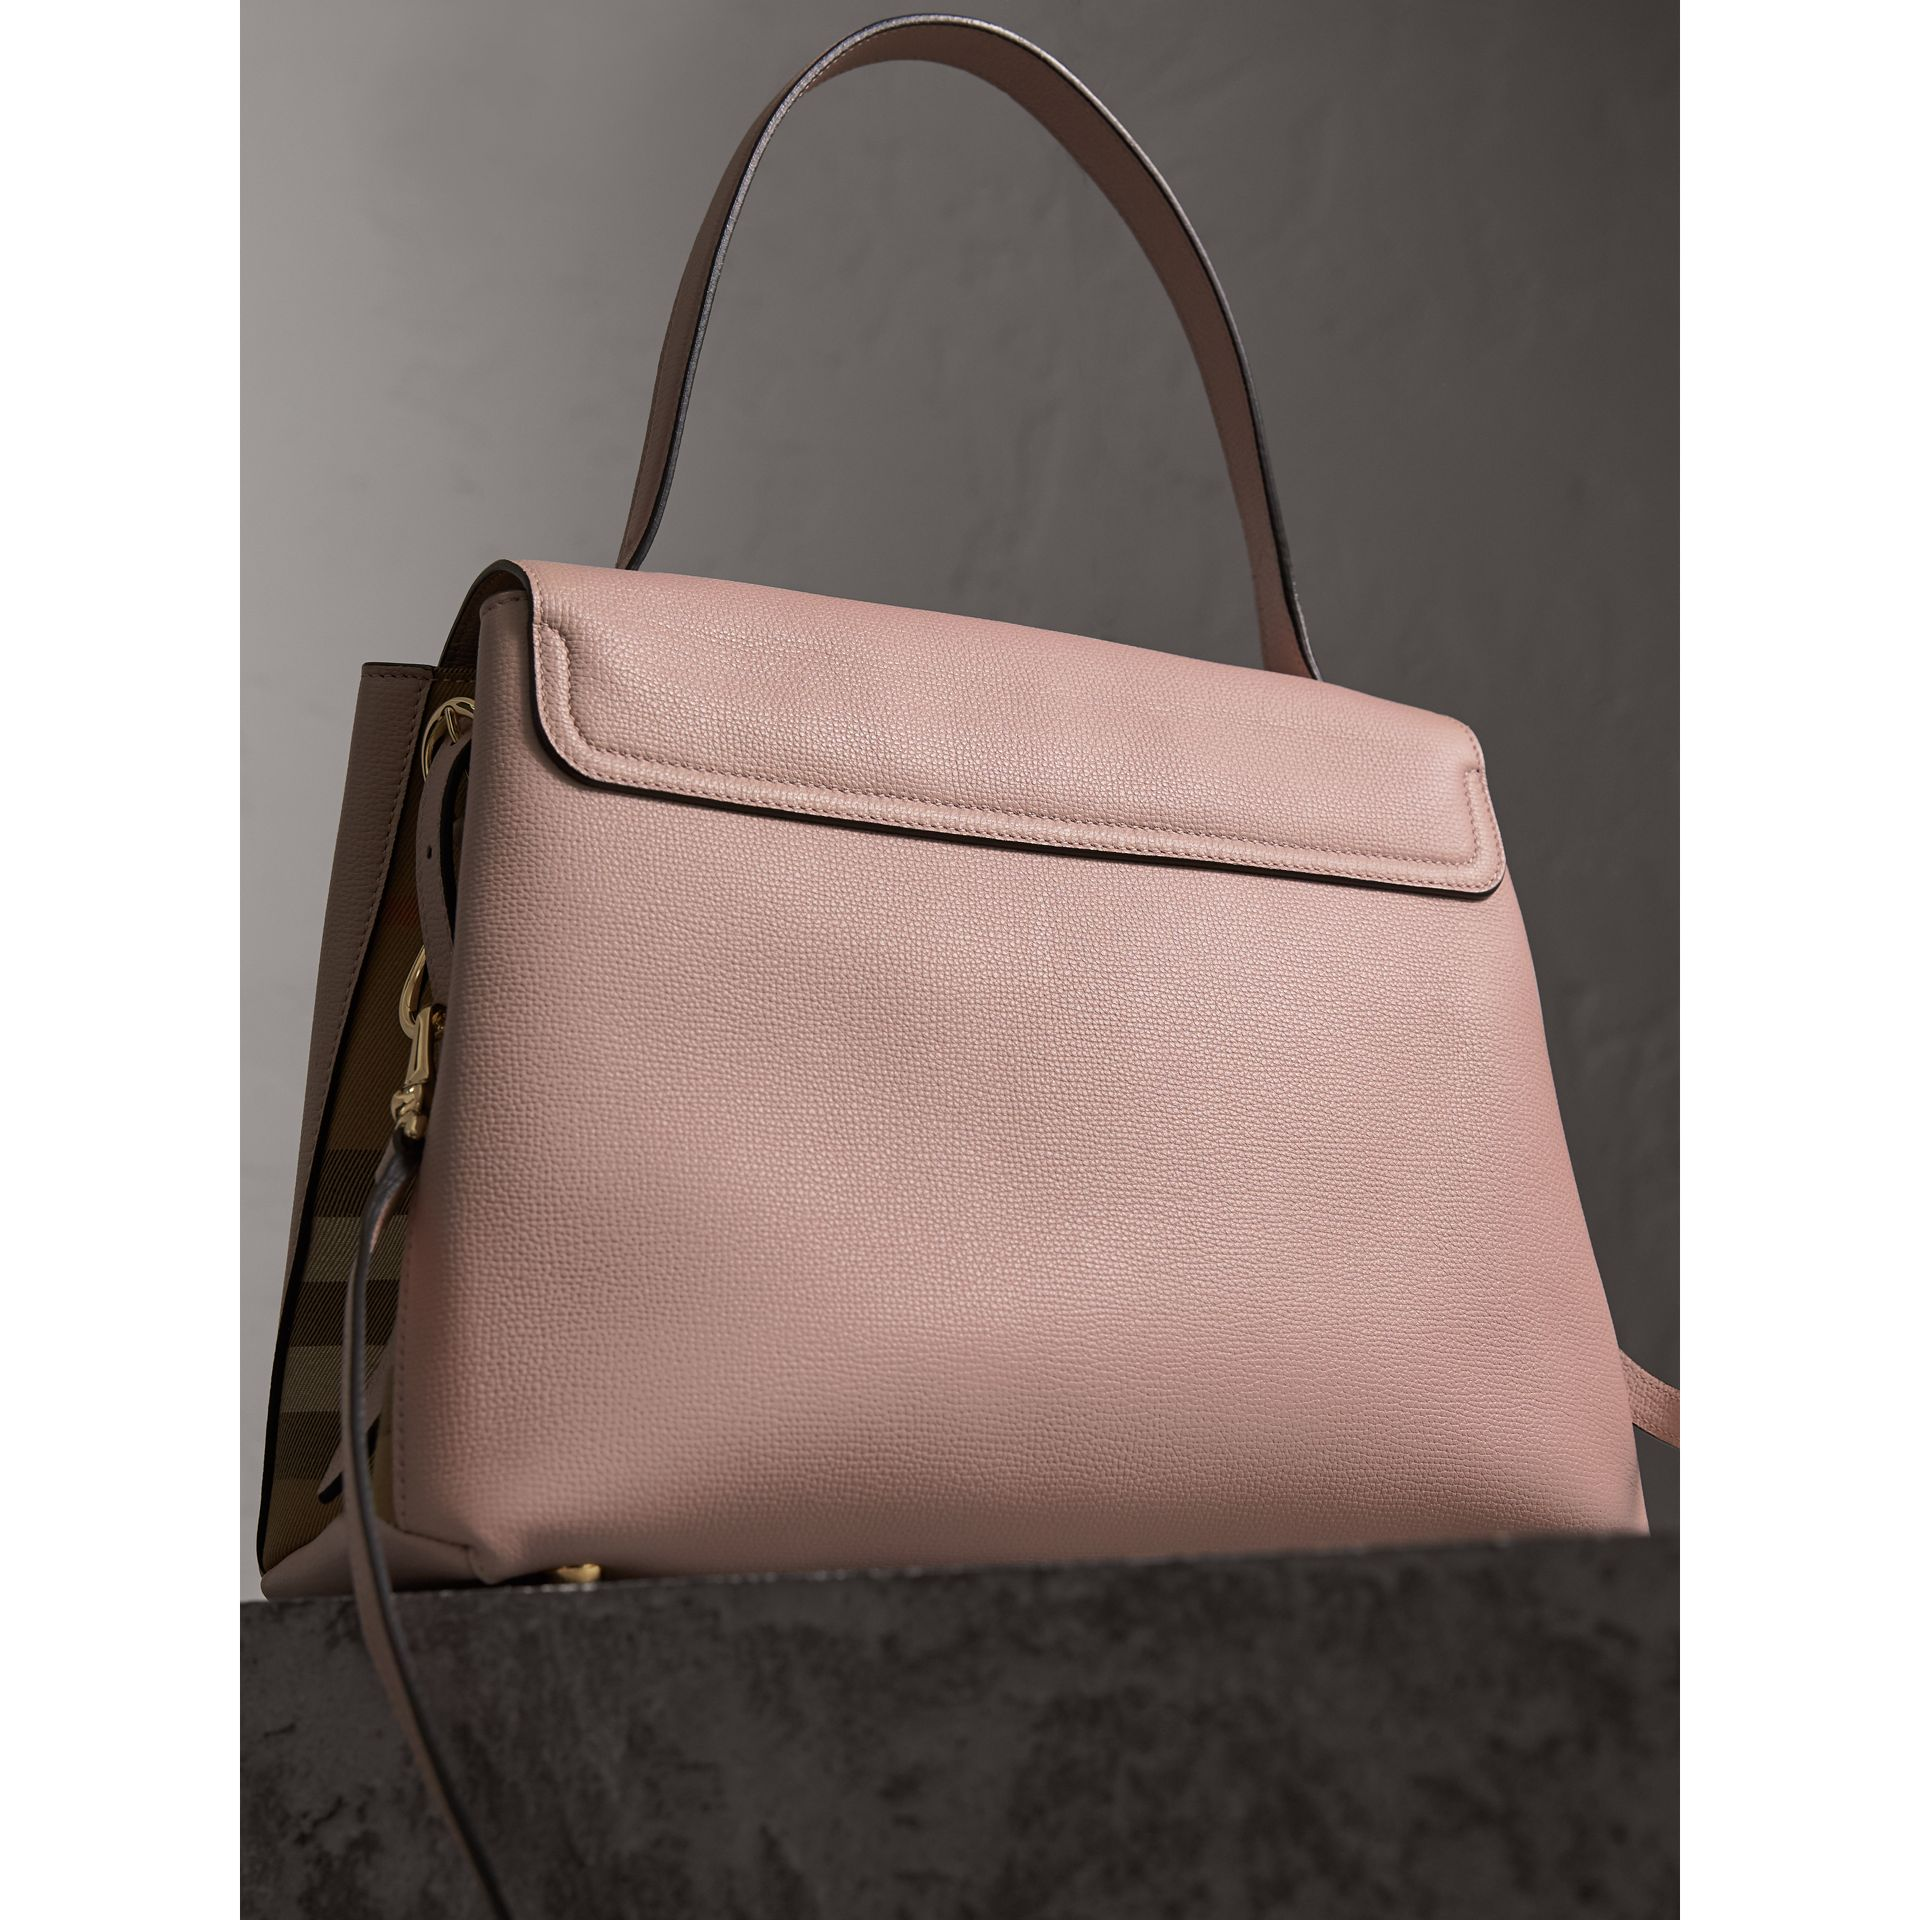 Medium Grainy Leather and House Check Tote Bag in Pale Orchid - Women | Burberry United Kingdom - gallery image 4